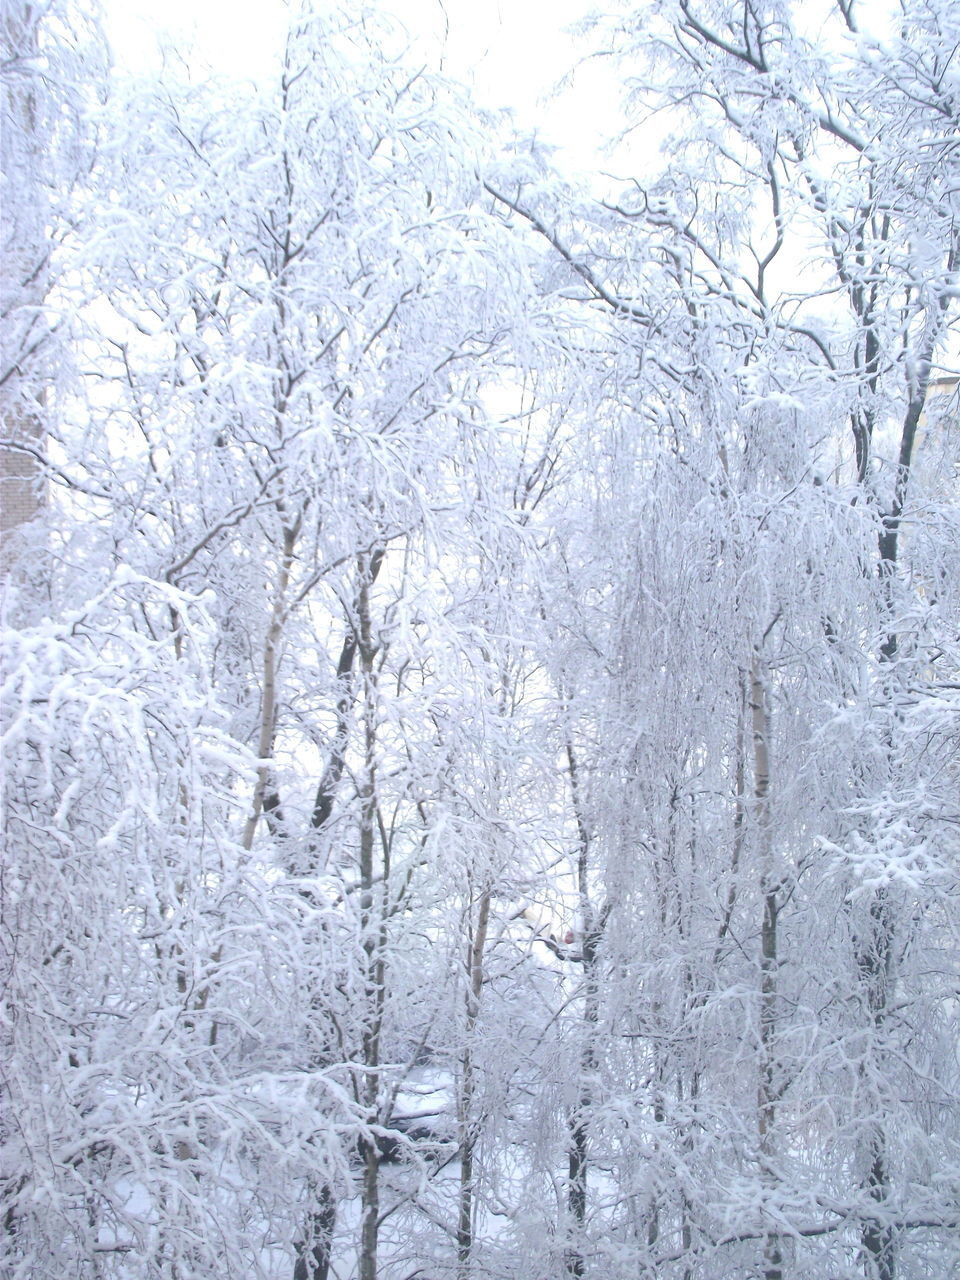 cold temperature, tree, snow, winter, plant, nature, tranquility, white color, no people, frozen, beauty in nature, tranquil scene, day, forest, scenics - nature, environment, snowing, land, bare tree, outdoors, ice, blizzard, extreme weather, purity, icicle